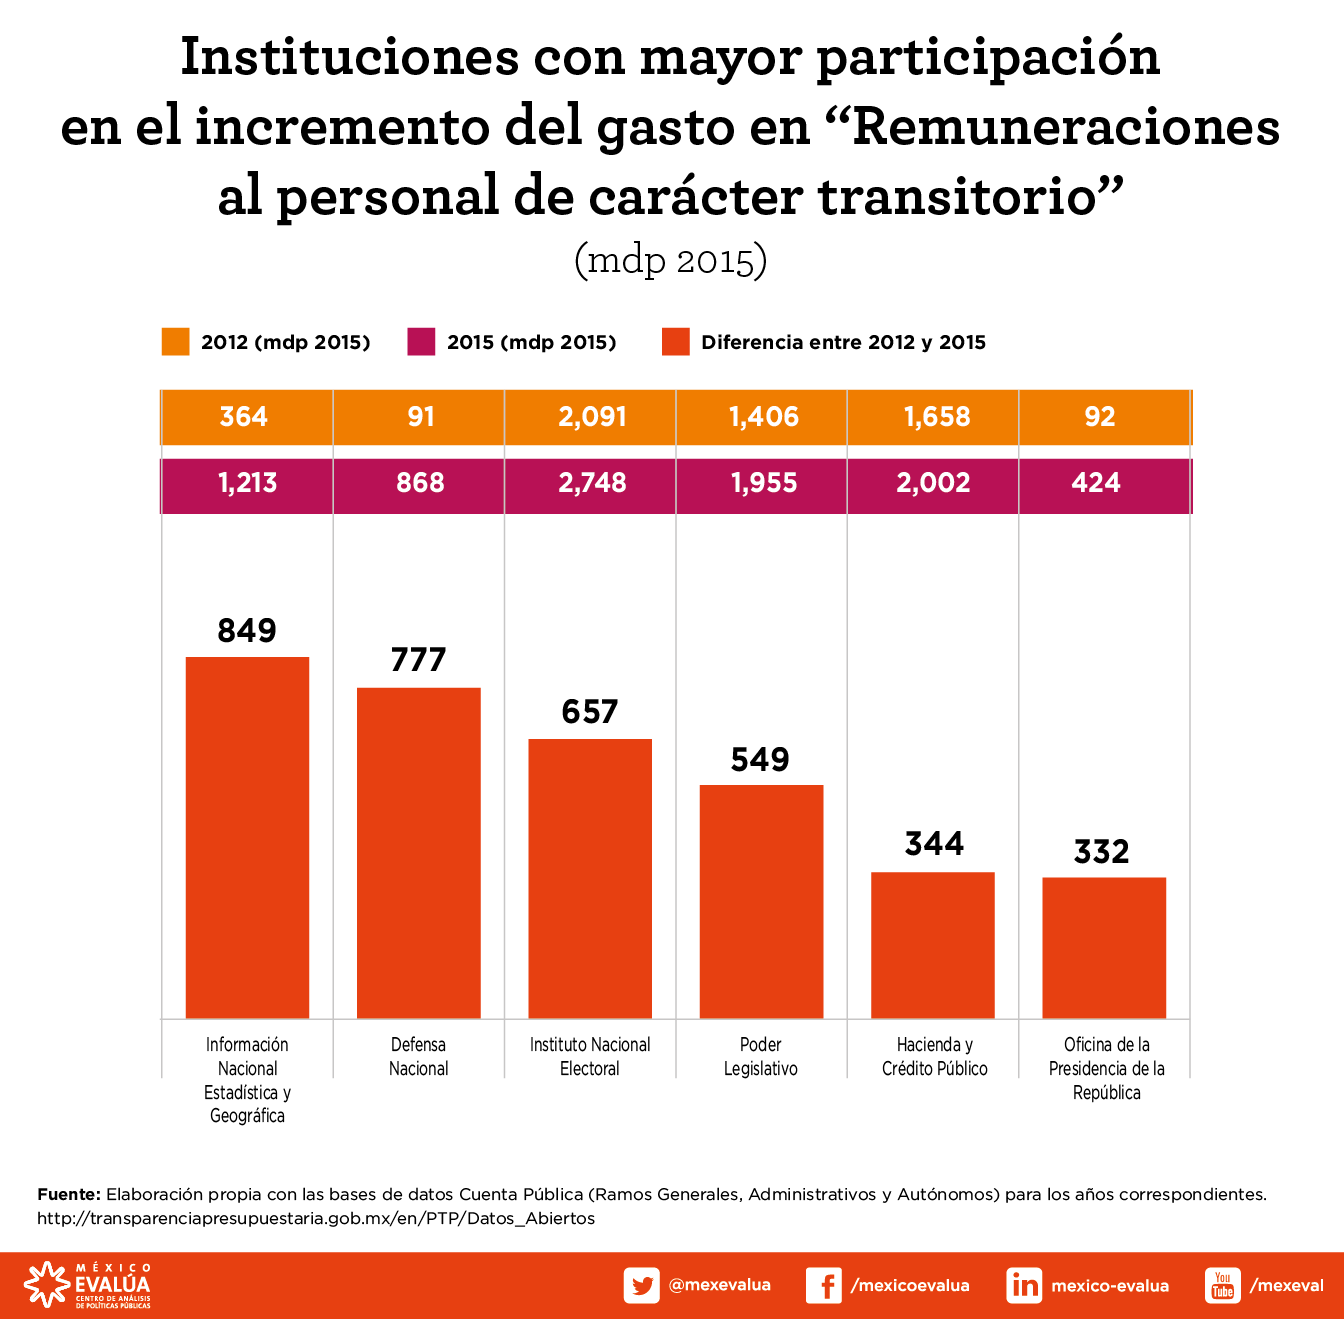 instituciones-con-mayor-incremento-gastos-personales-transitorios